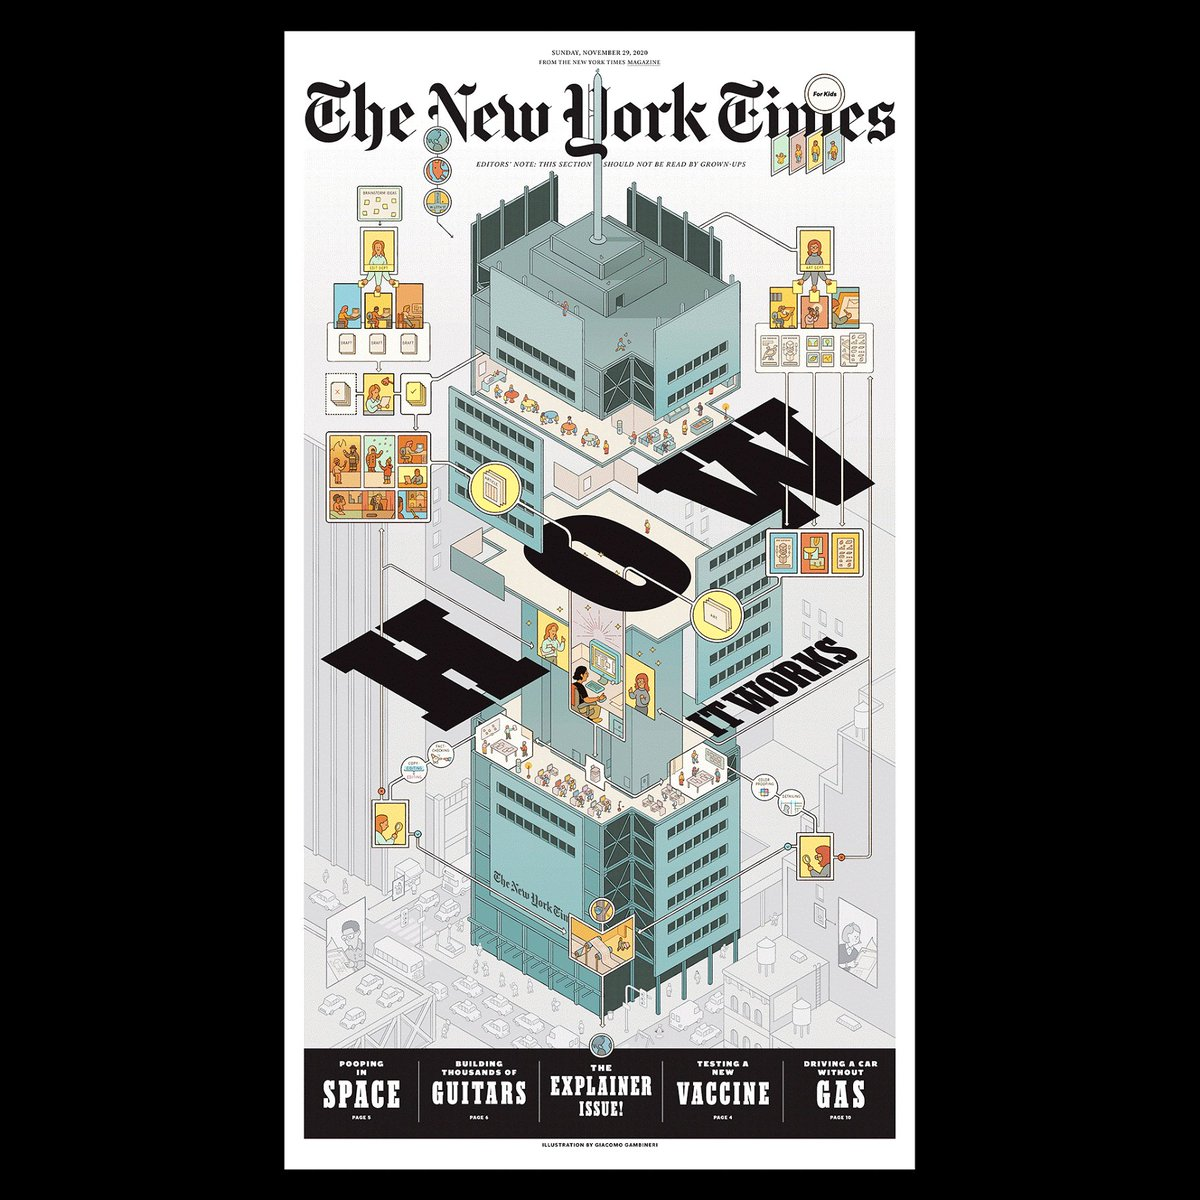 In your @nytimes this Sunday 11/29, a very special How-It-Works issue of The New York Times for Kids! https://t.co/sK3y7hpQXn